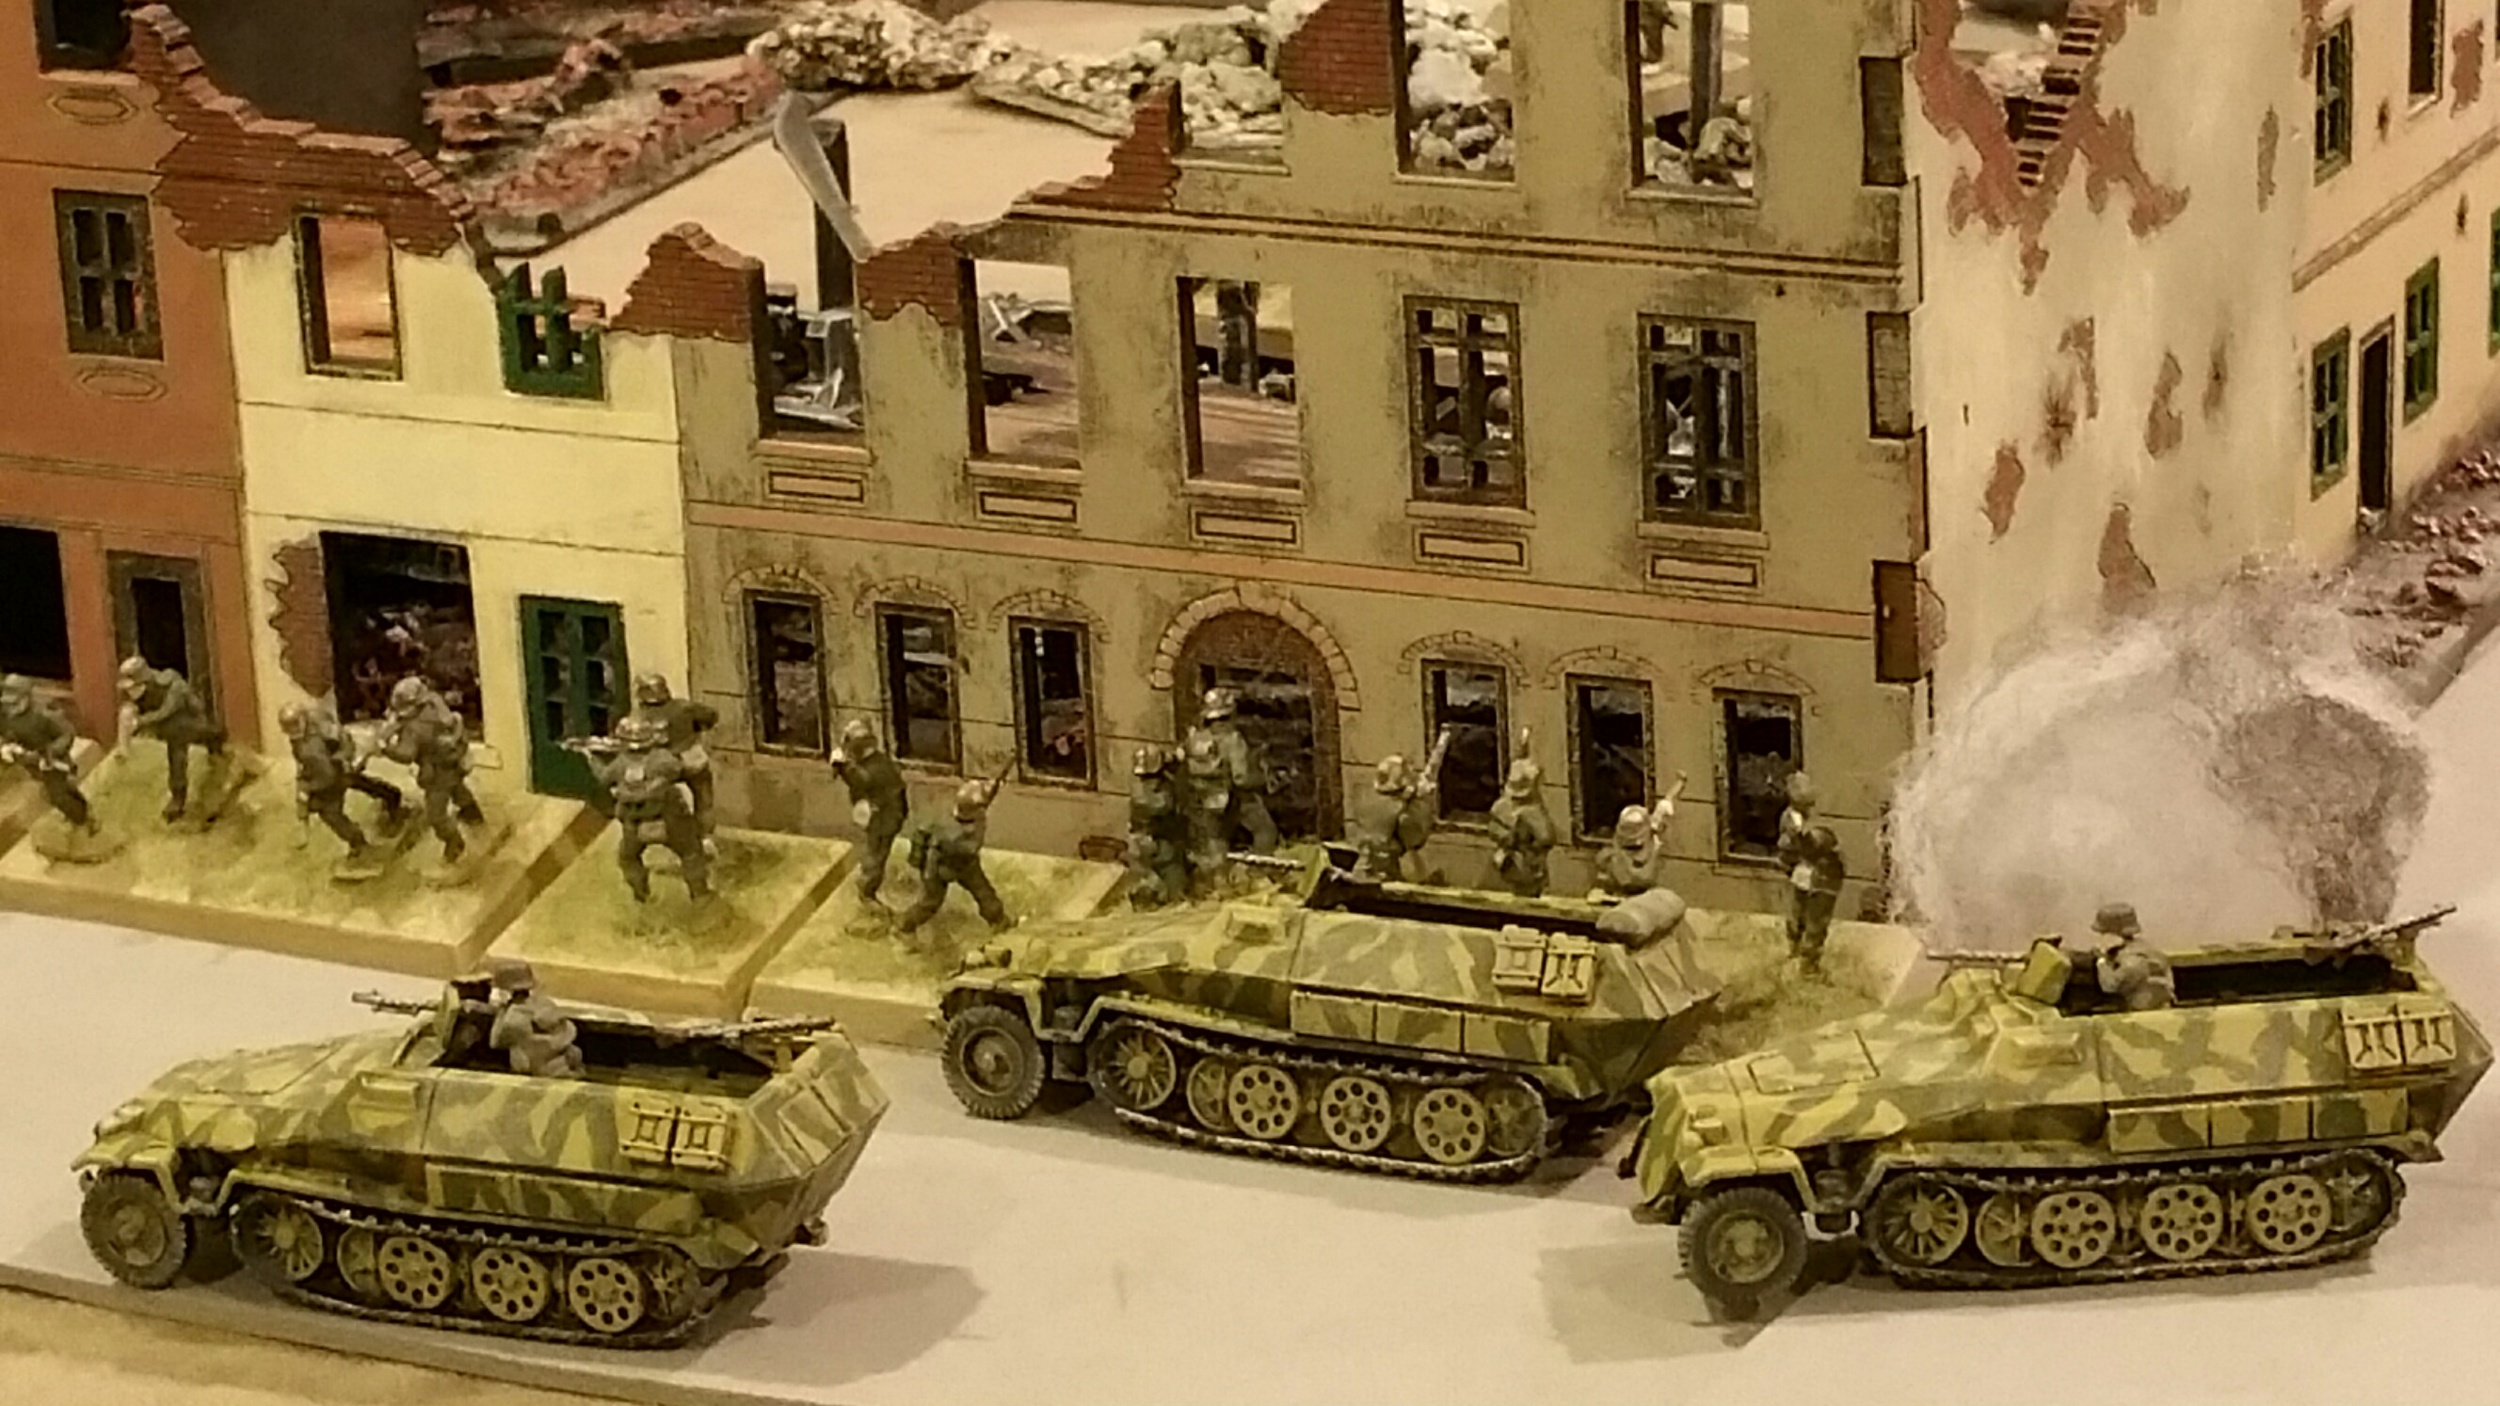 The German infantry pushes in the center. After a bloody repulse of one platoon in close combat, 2 others push into town. Armored Panzer grenadiers disembark and begin to push the remaining G.I.s in town.